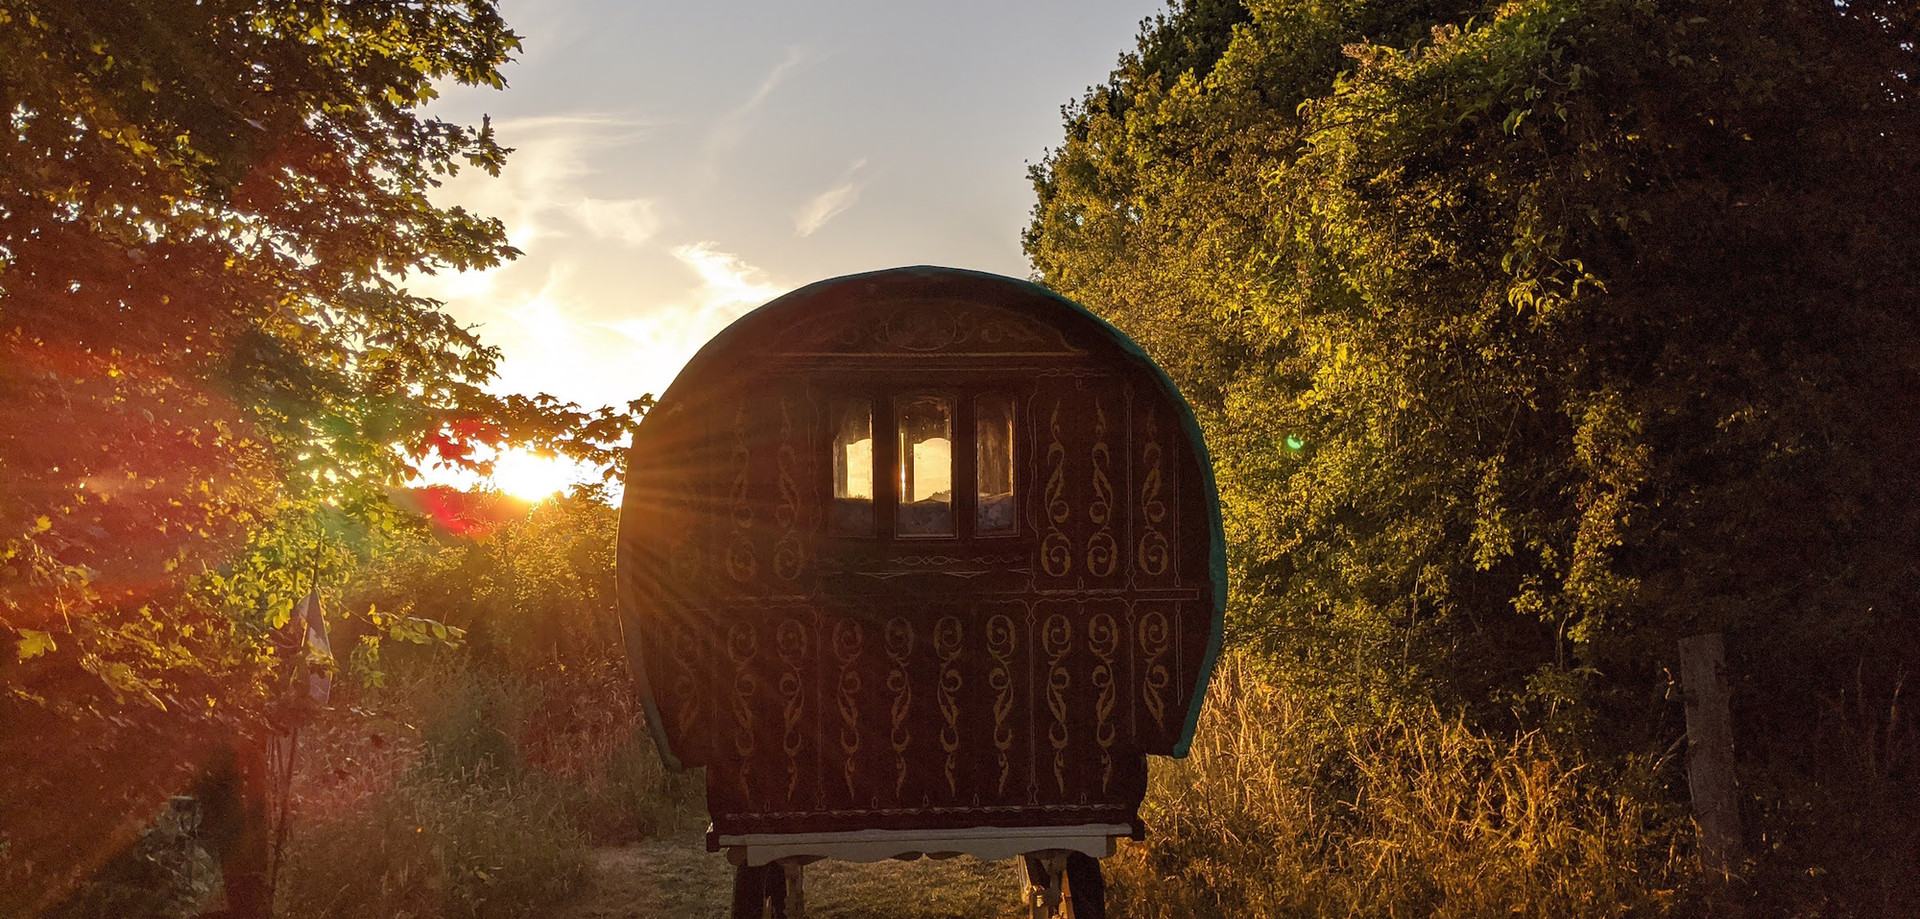 Stay in our Gypsy Wagon